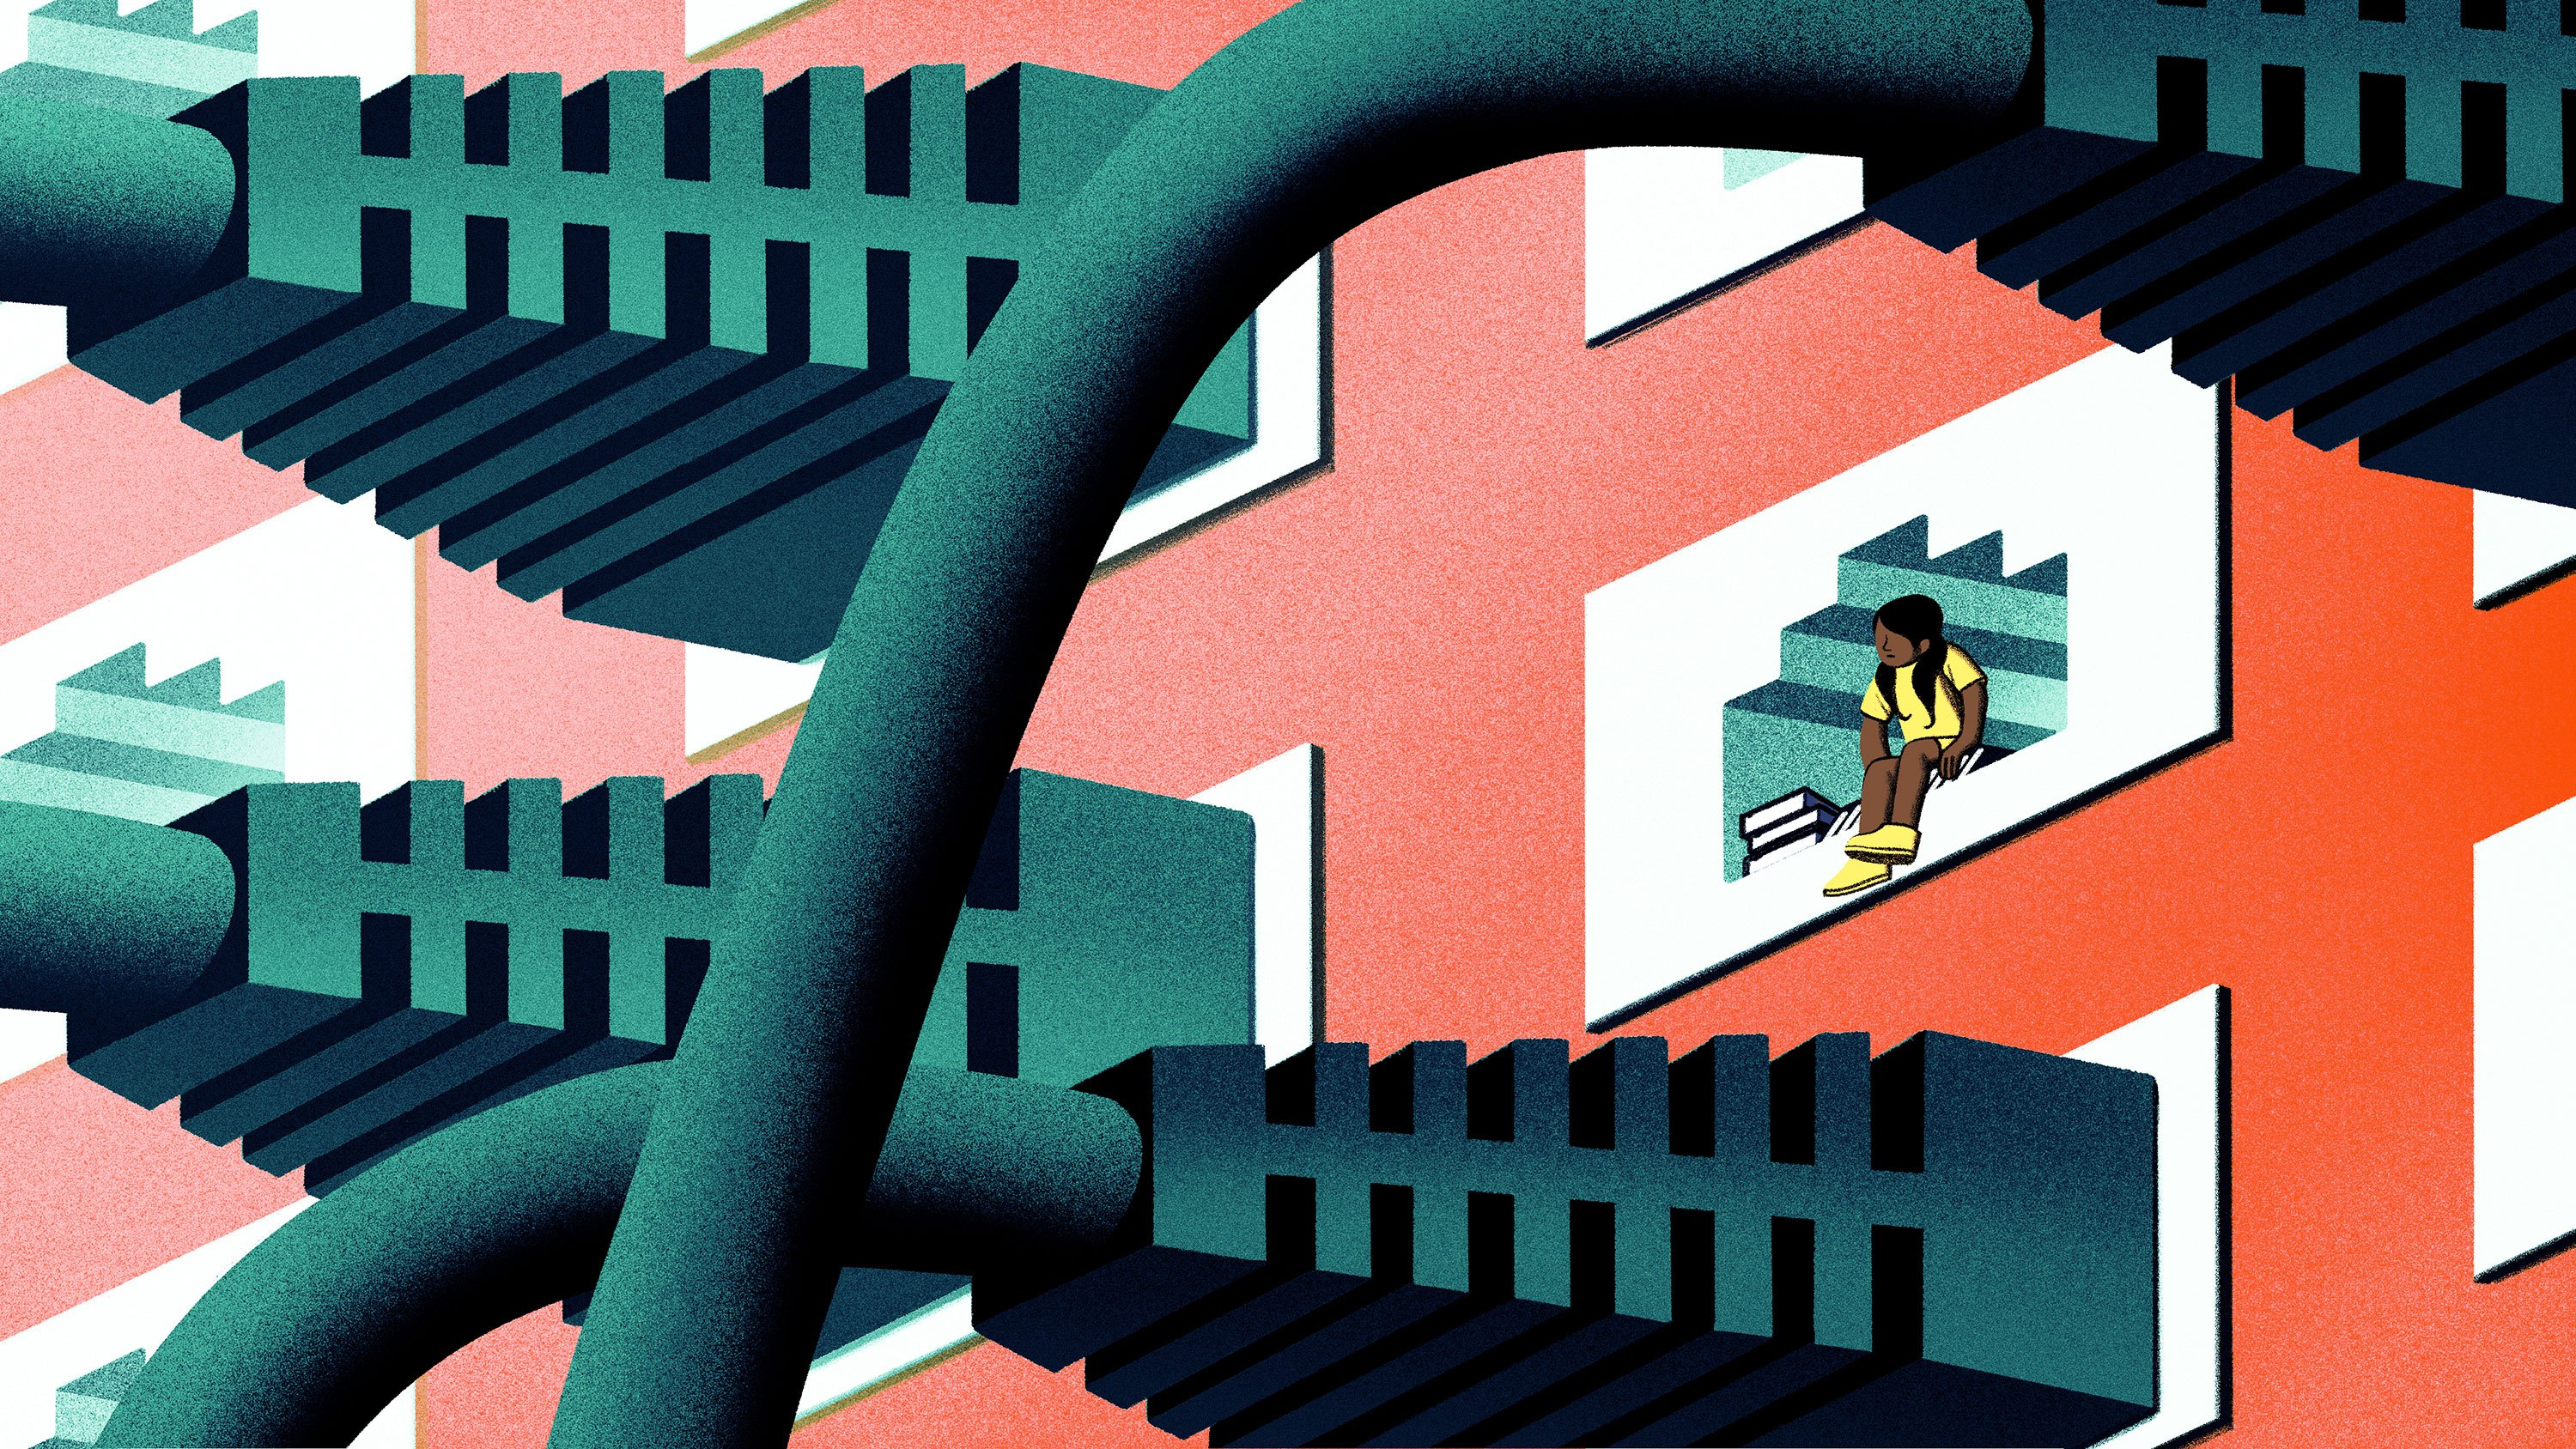 Conceptual illustration of a student sitting in a window that shows large ethernet cords plugged in around her